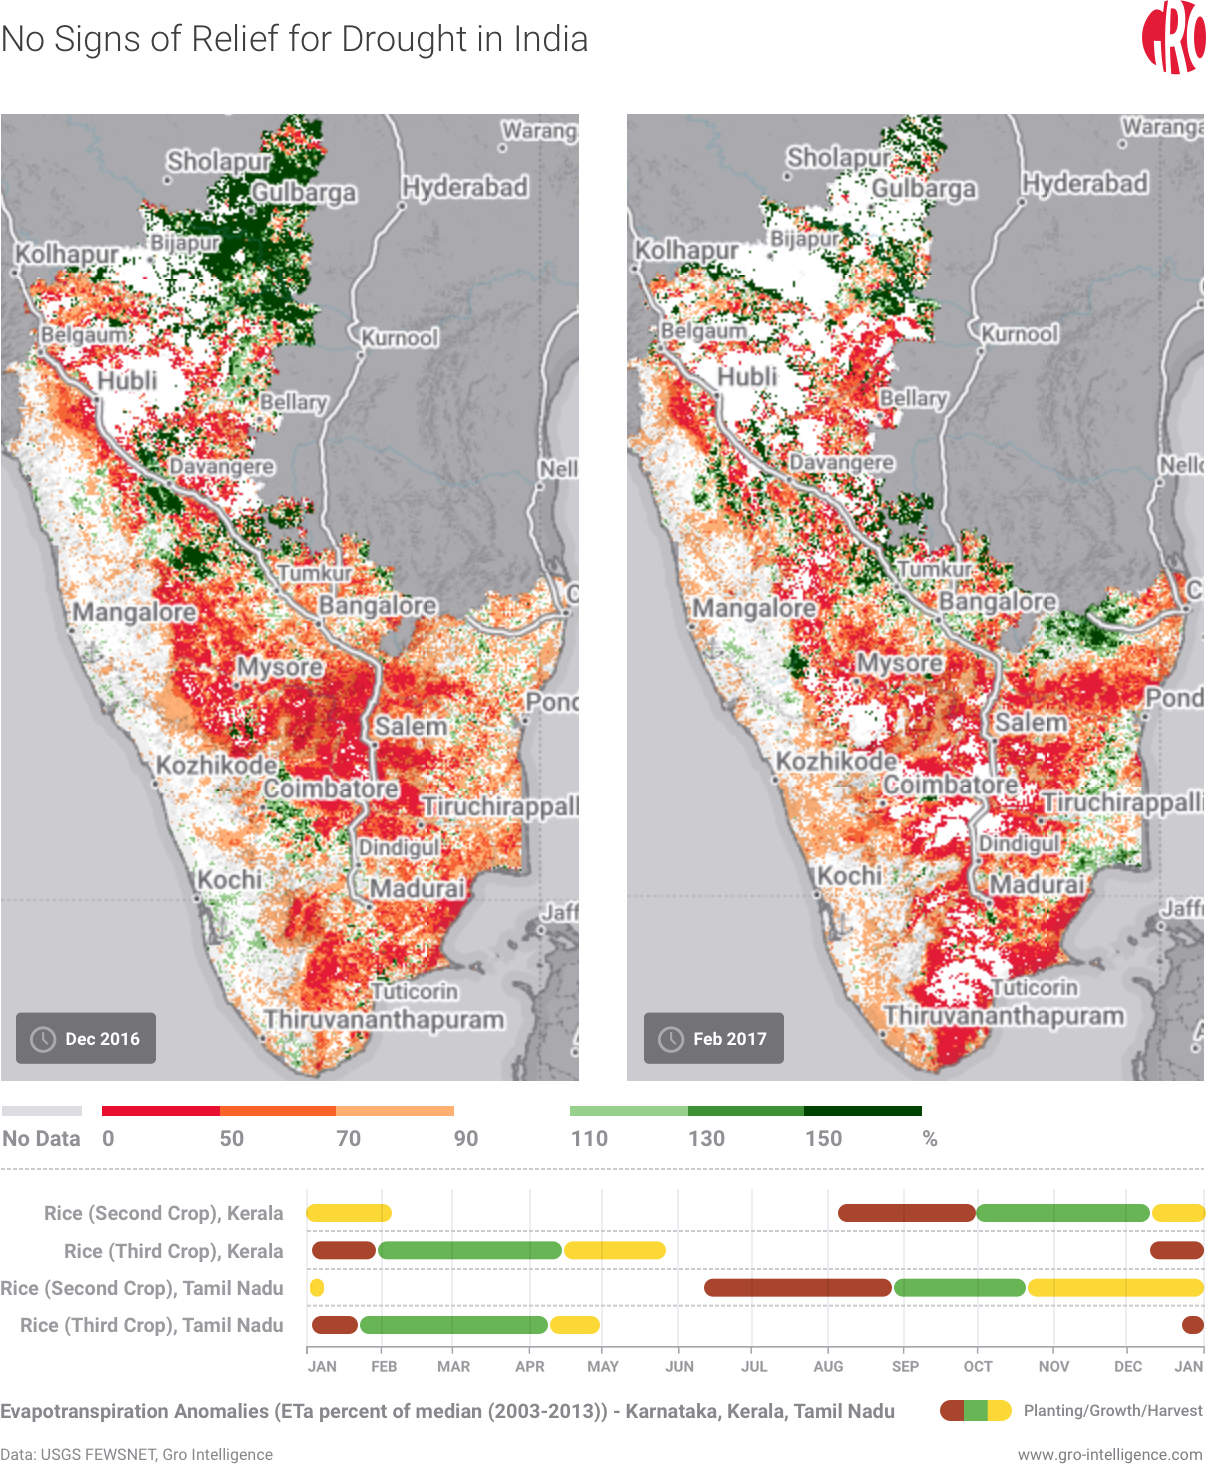 No Signs of Relief for Drought in India